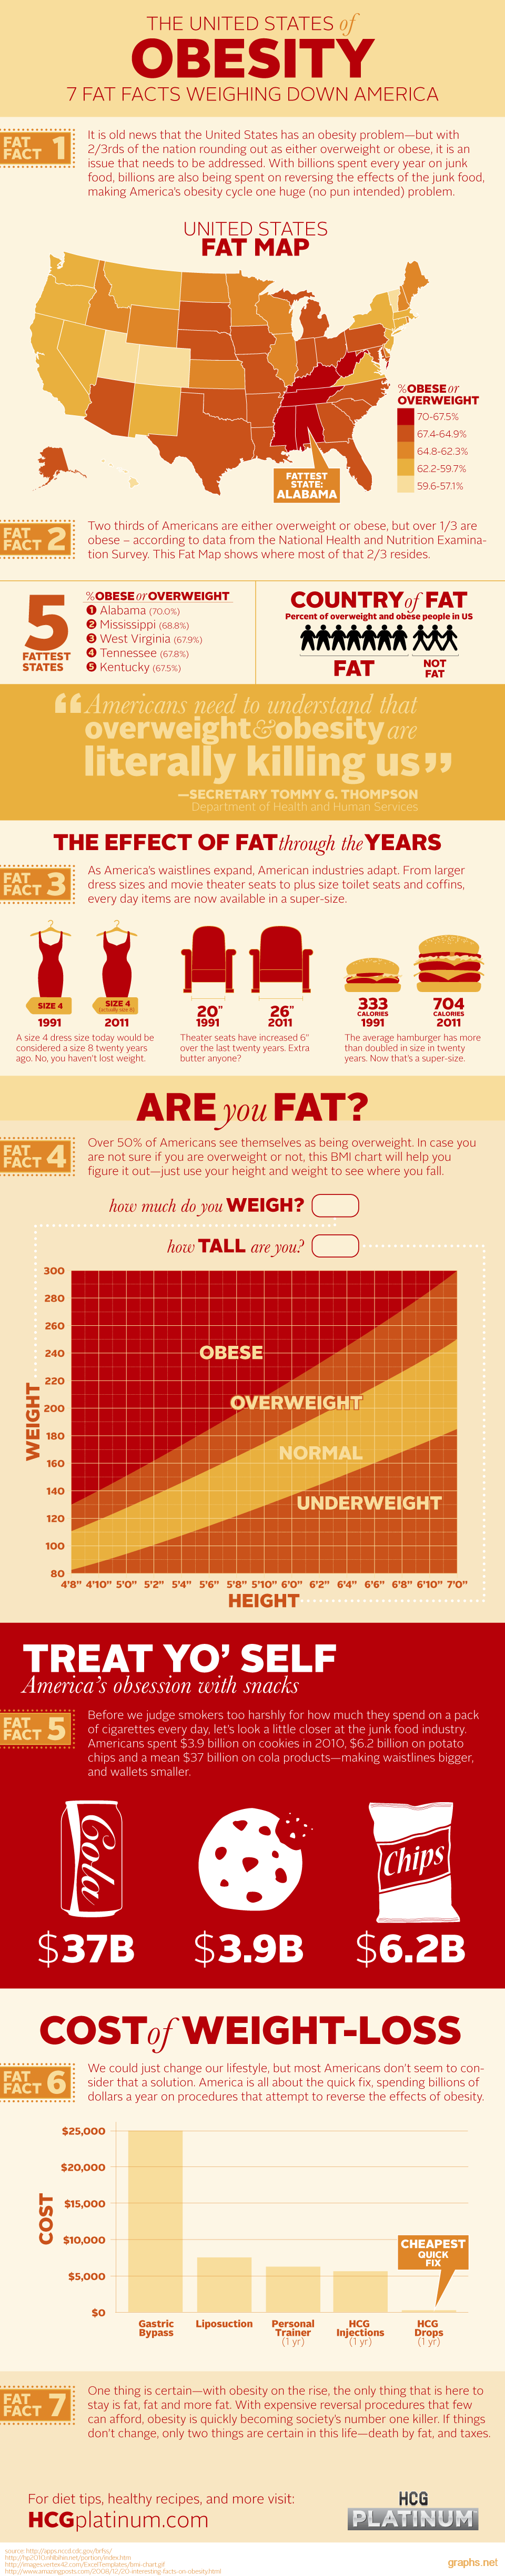 united states obesity facts